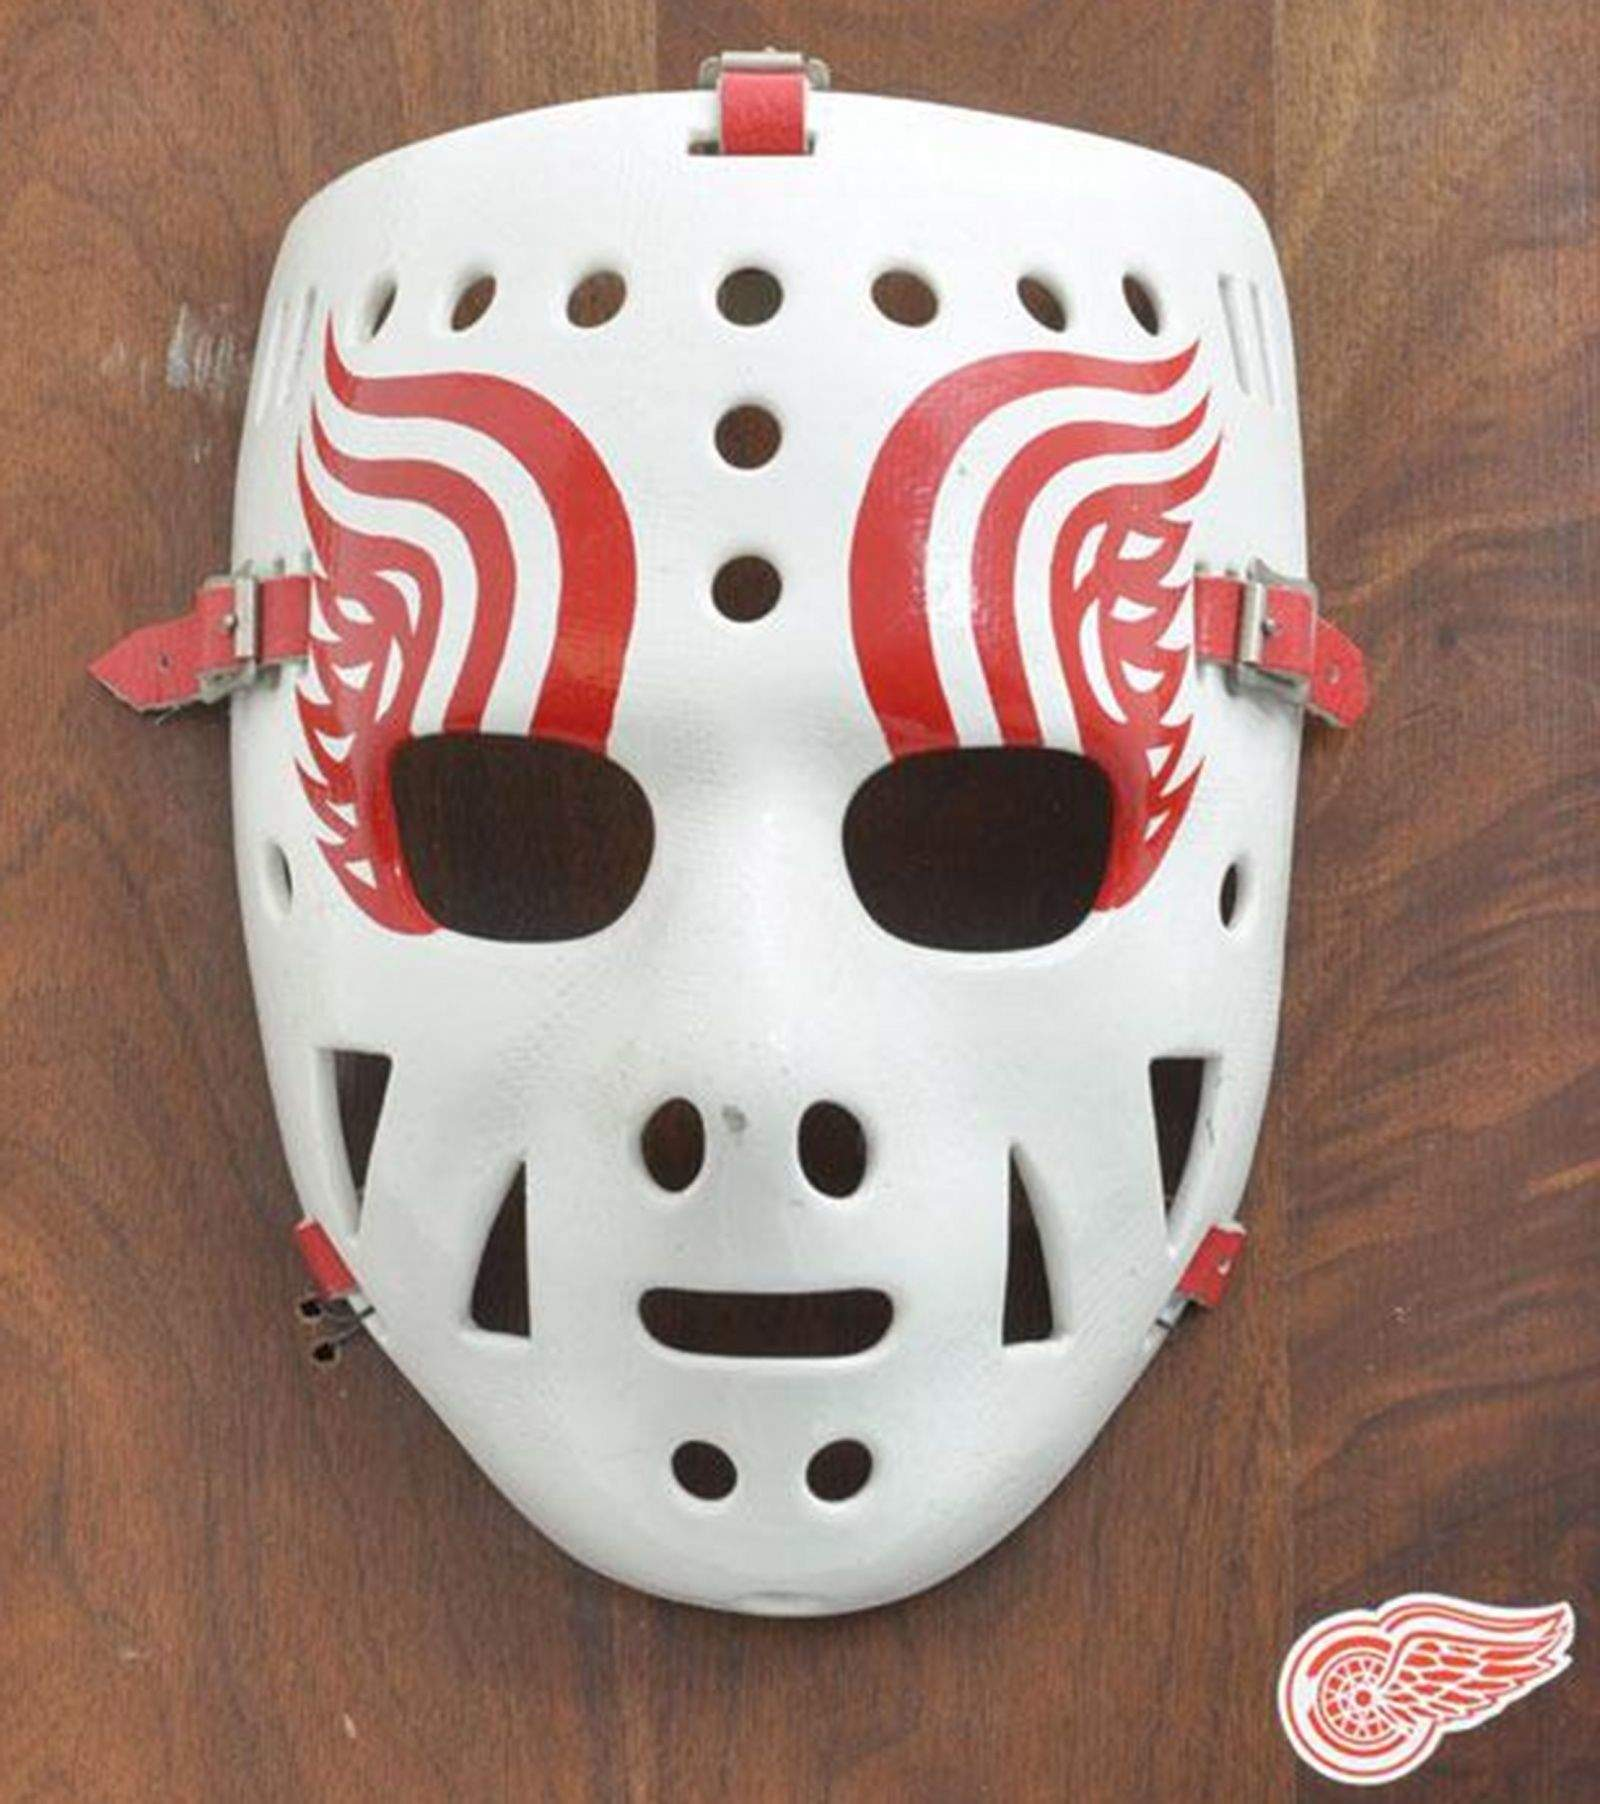 1600x1804 Hockey's Goalie Mask Saved Face And Grew Into Work Of Art